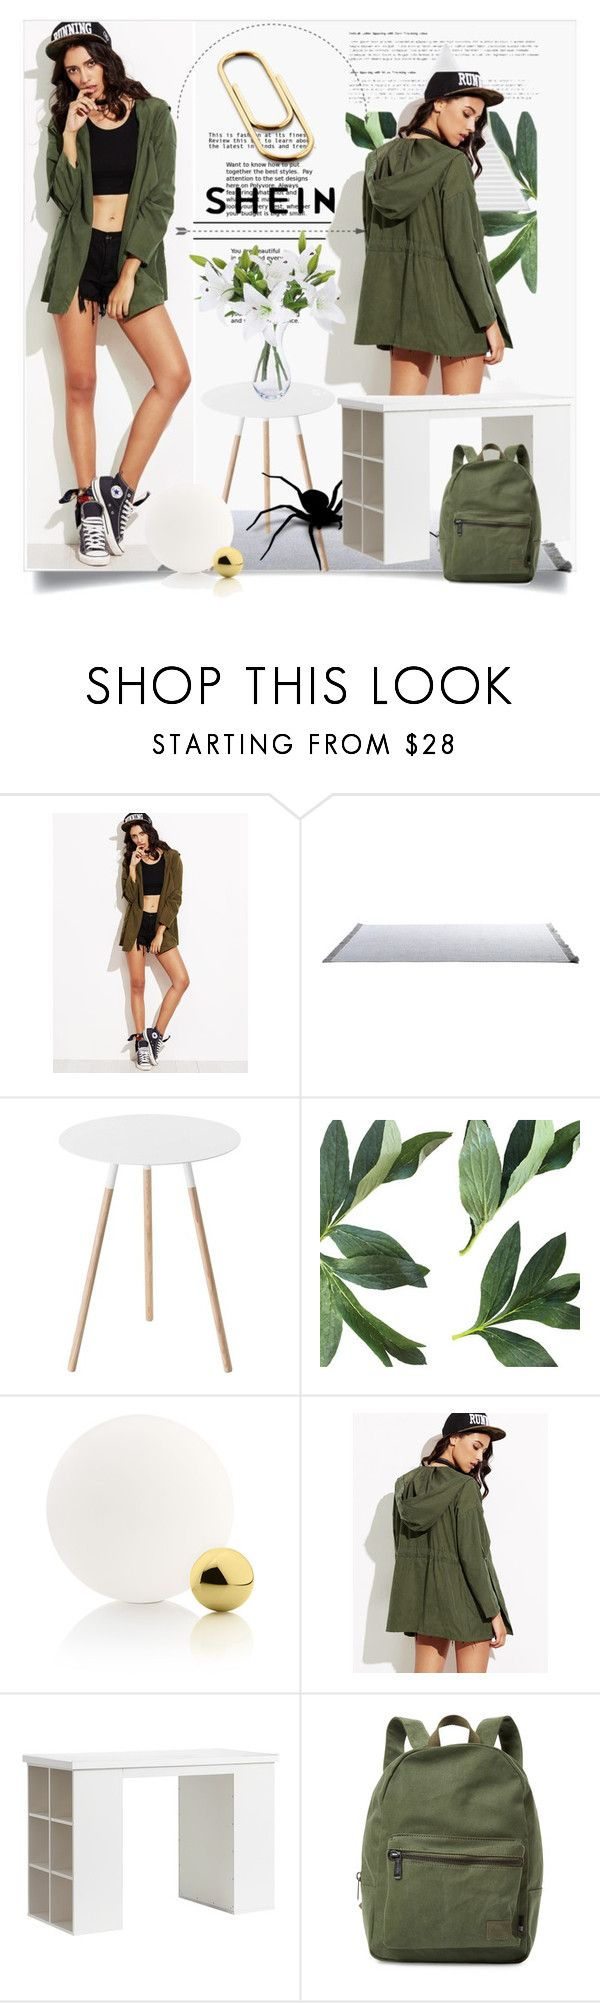 """""""Coat (shein)"""" by ilona-828 ❤ liked on Polyvore featuring Yamazaki, Flos, PBteen, Herschel Supply Co., Home, polyvoreeditorial and shein"""